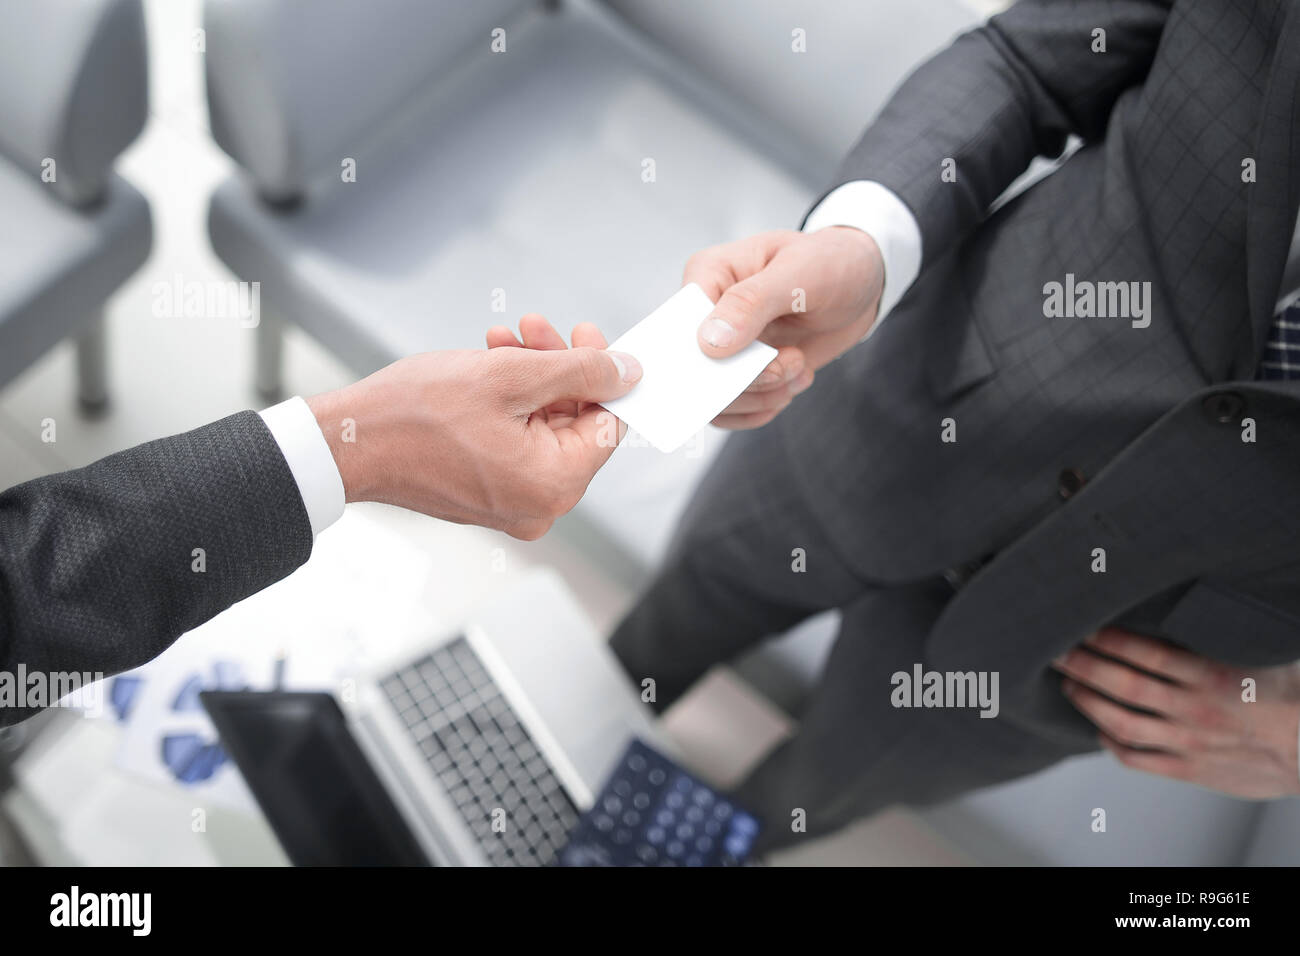 business partners exchanging business cards - Stock Image